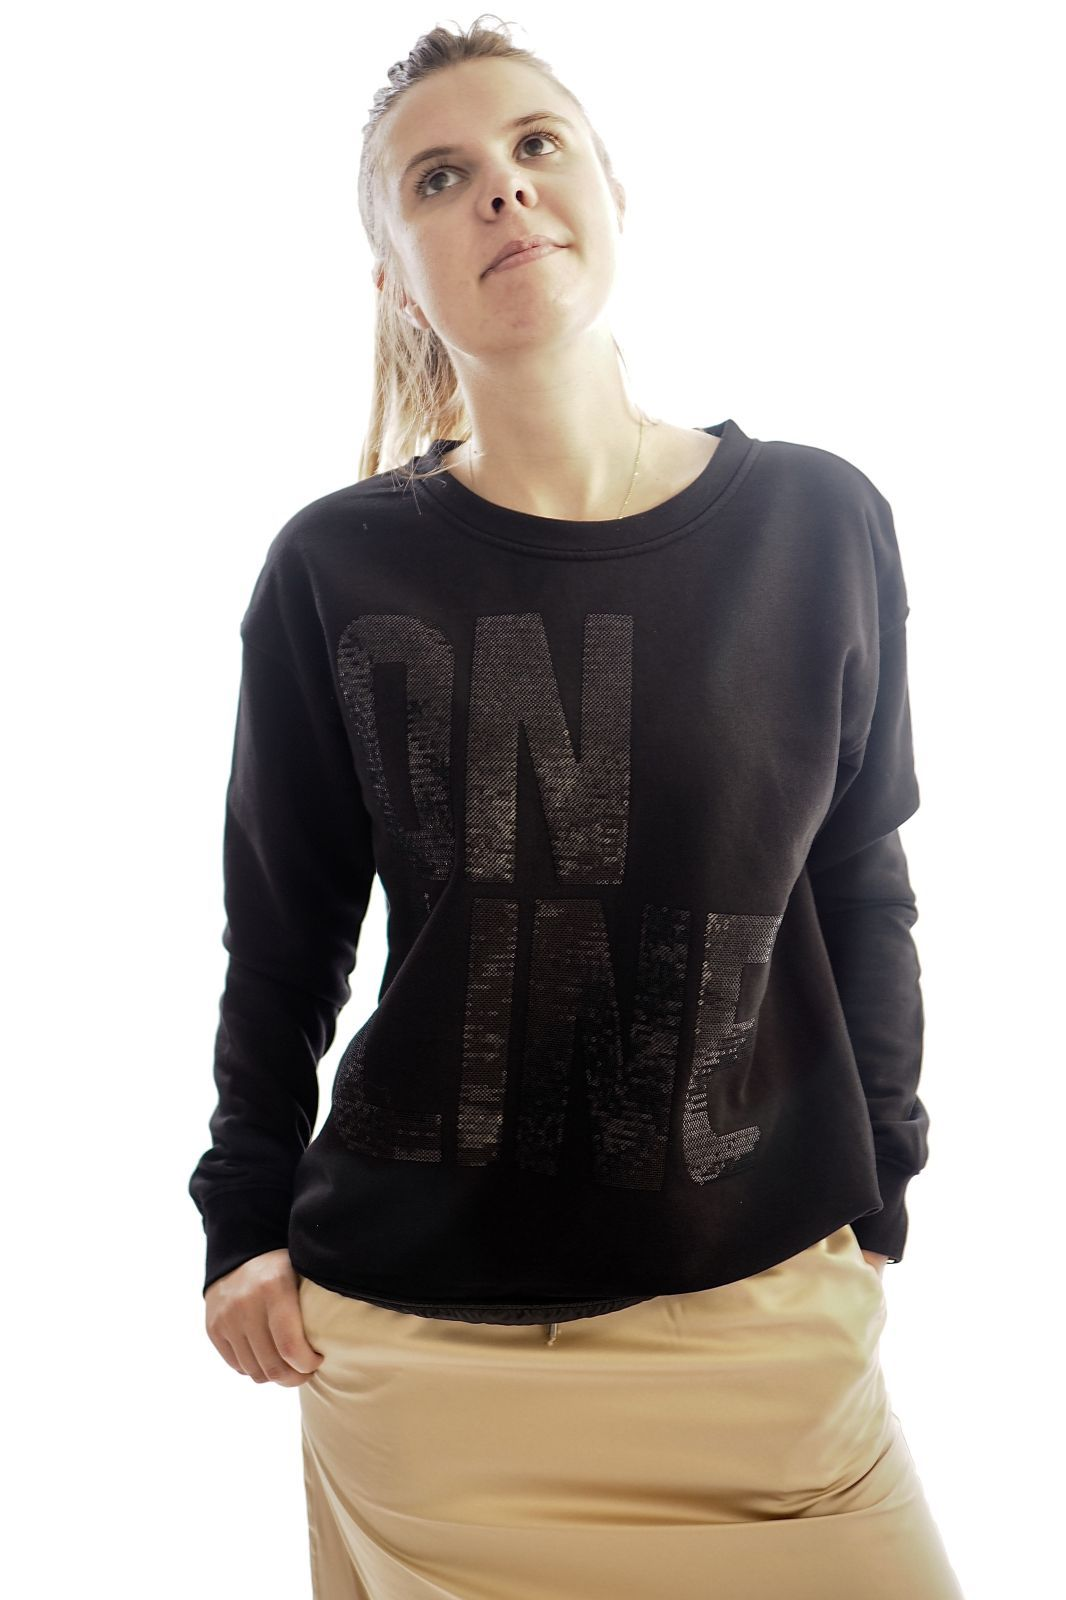 Margittes pull Noir femmes (MARGI-Sweat On Line - 26449 sweat col rond noir) - Marine | Much more than shoes